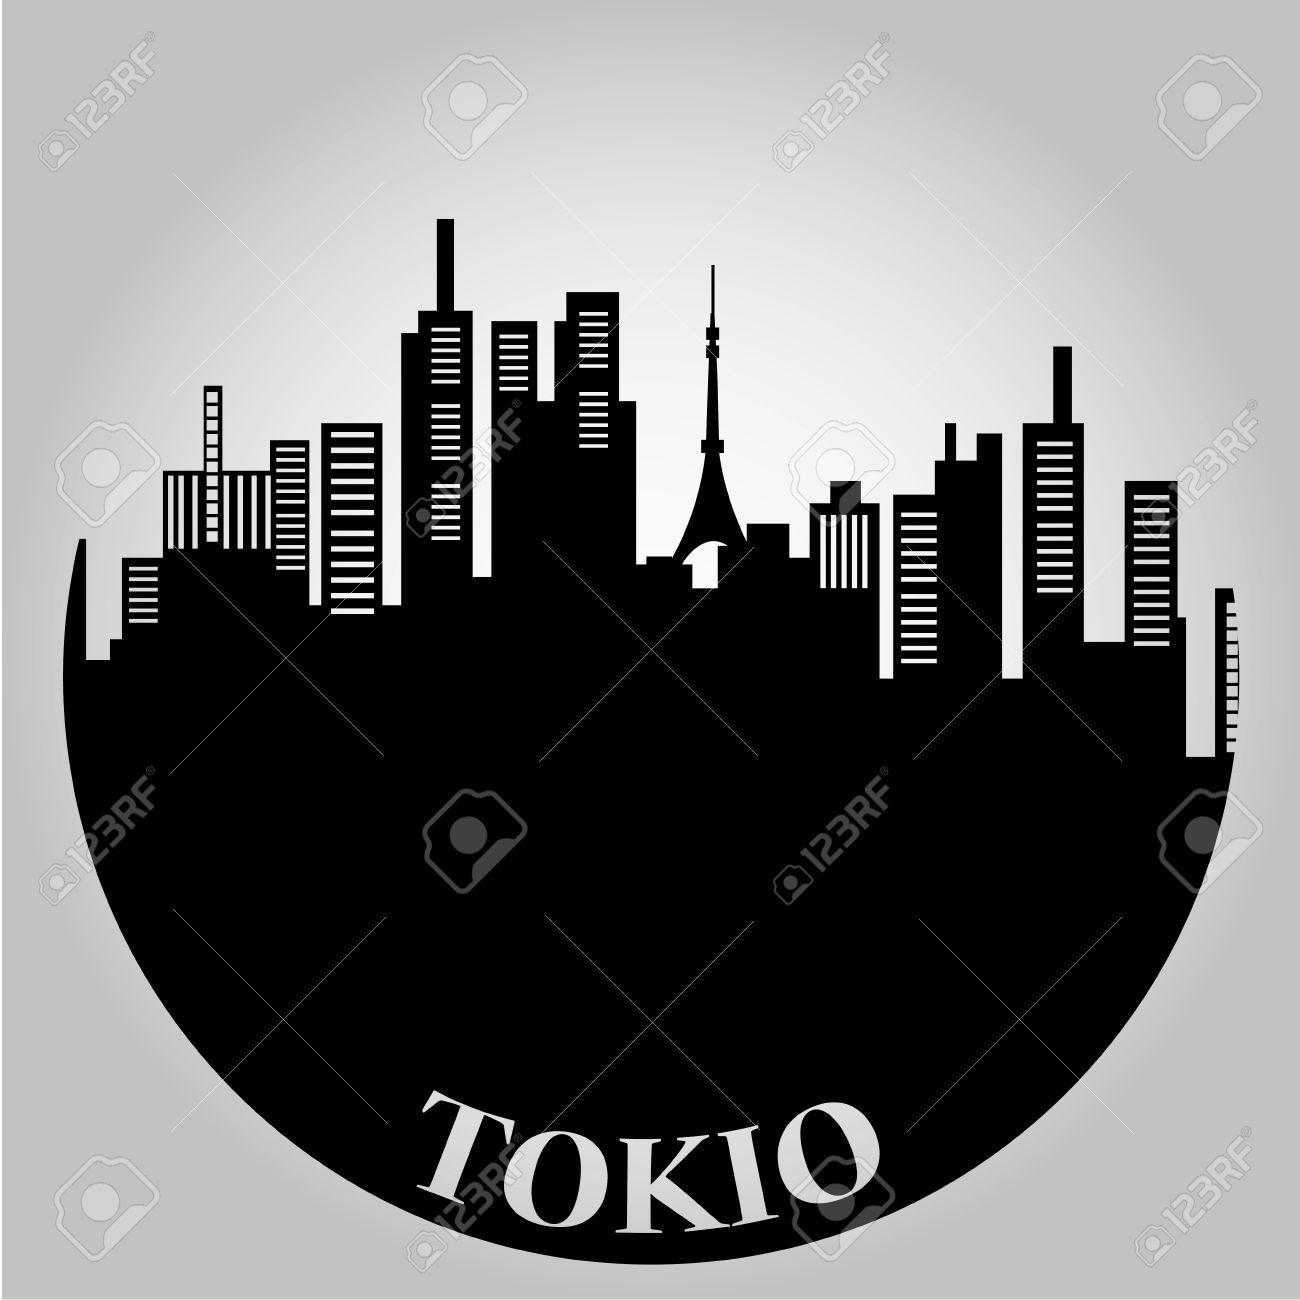 some black silhouettes of the buildings from tokyo - 22898753